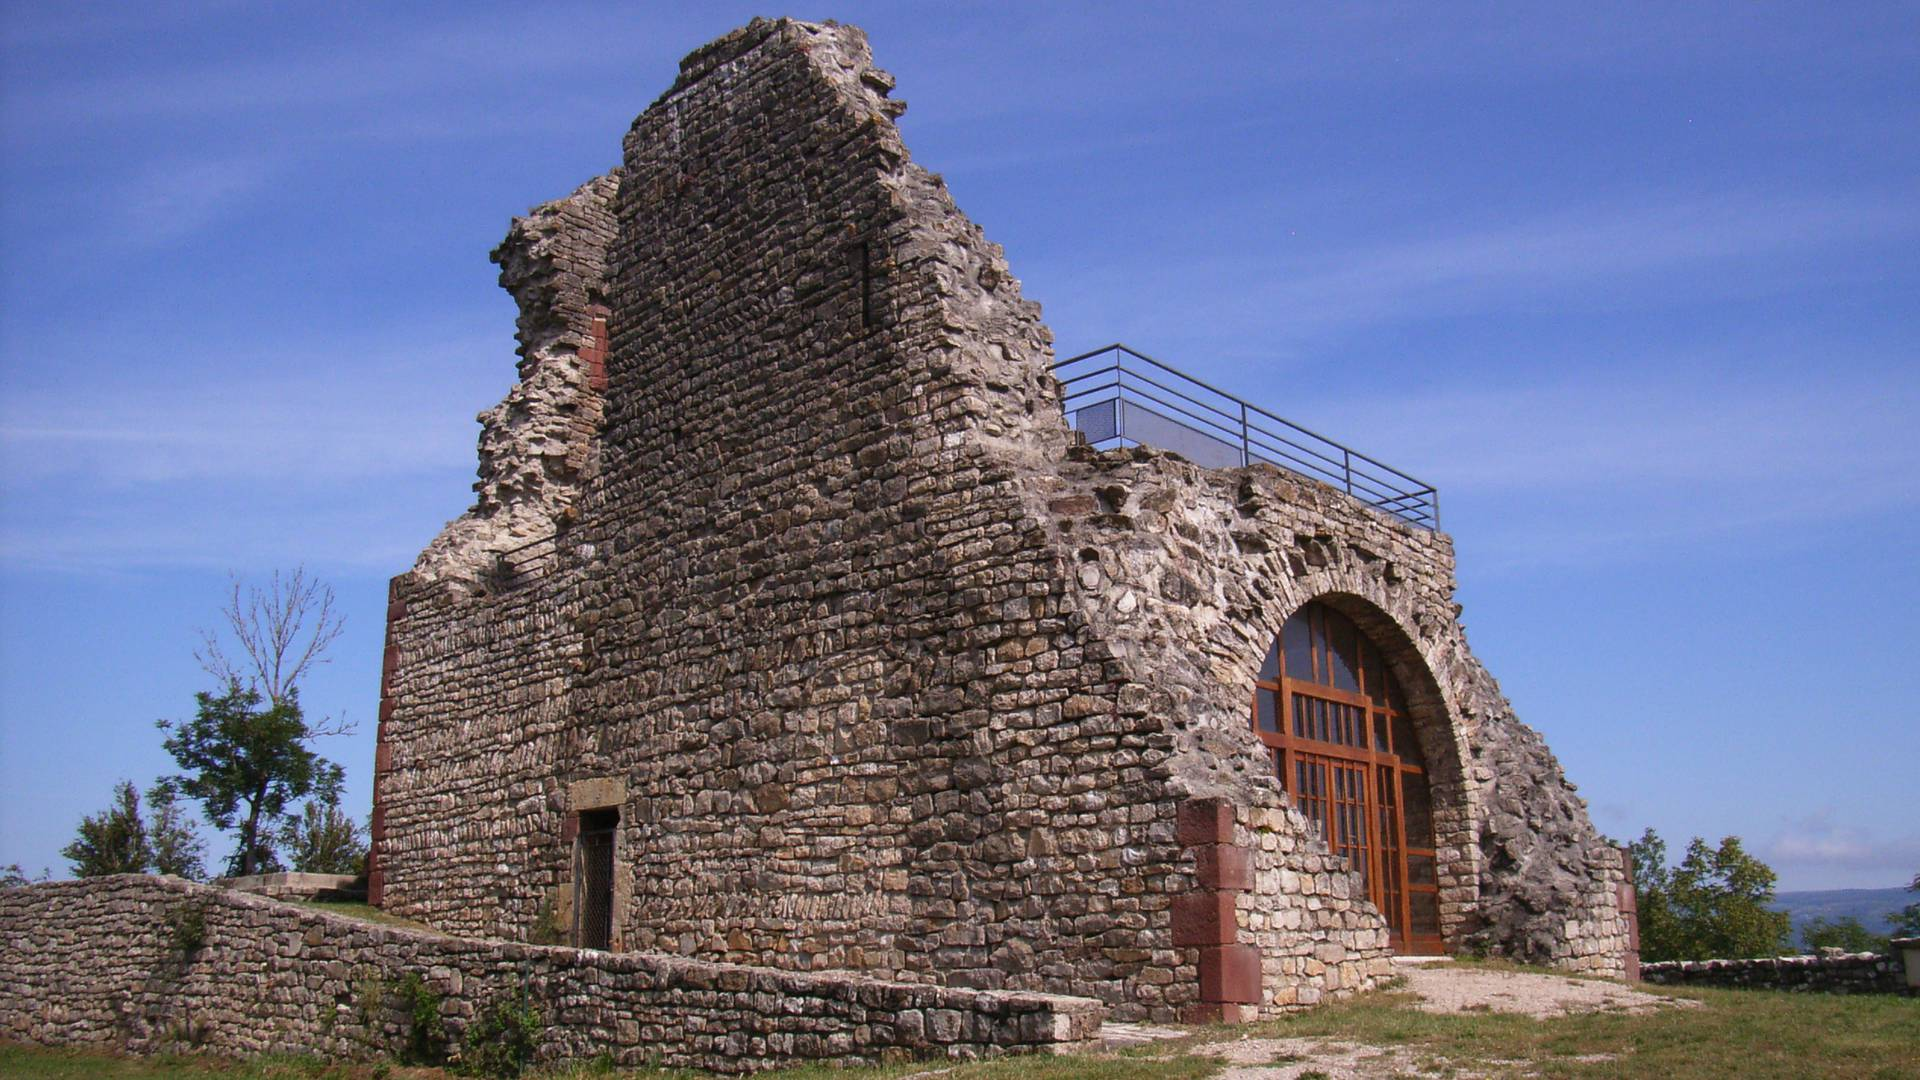 Ruins of Canilhac's castle